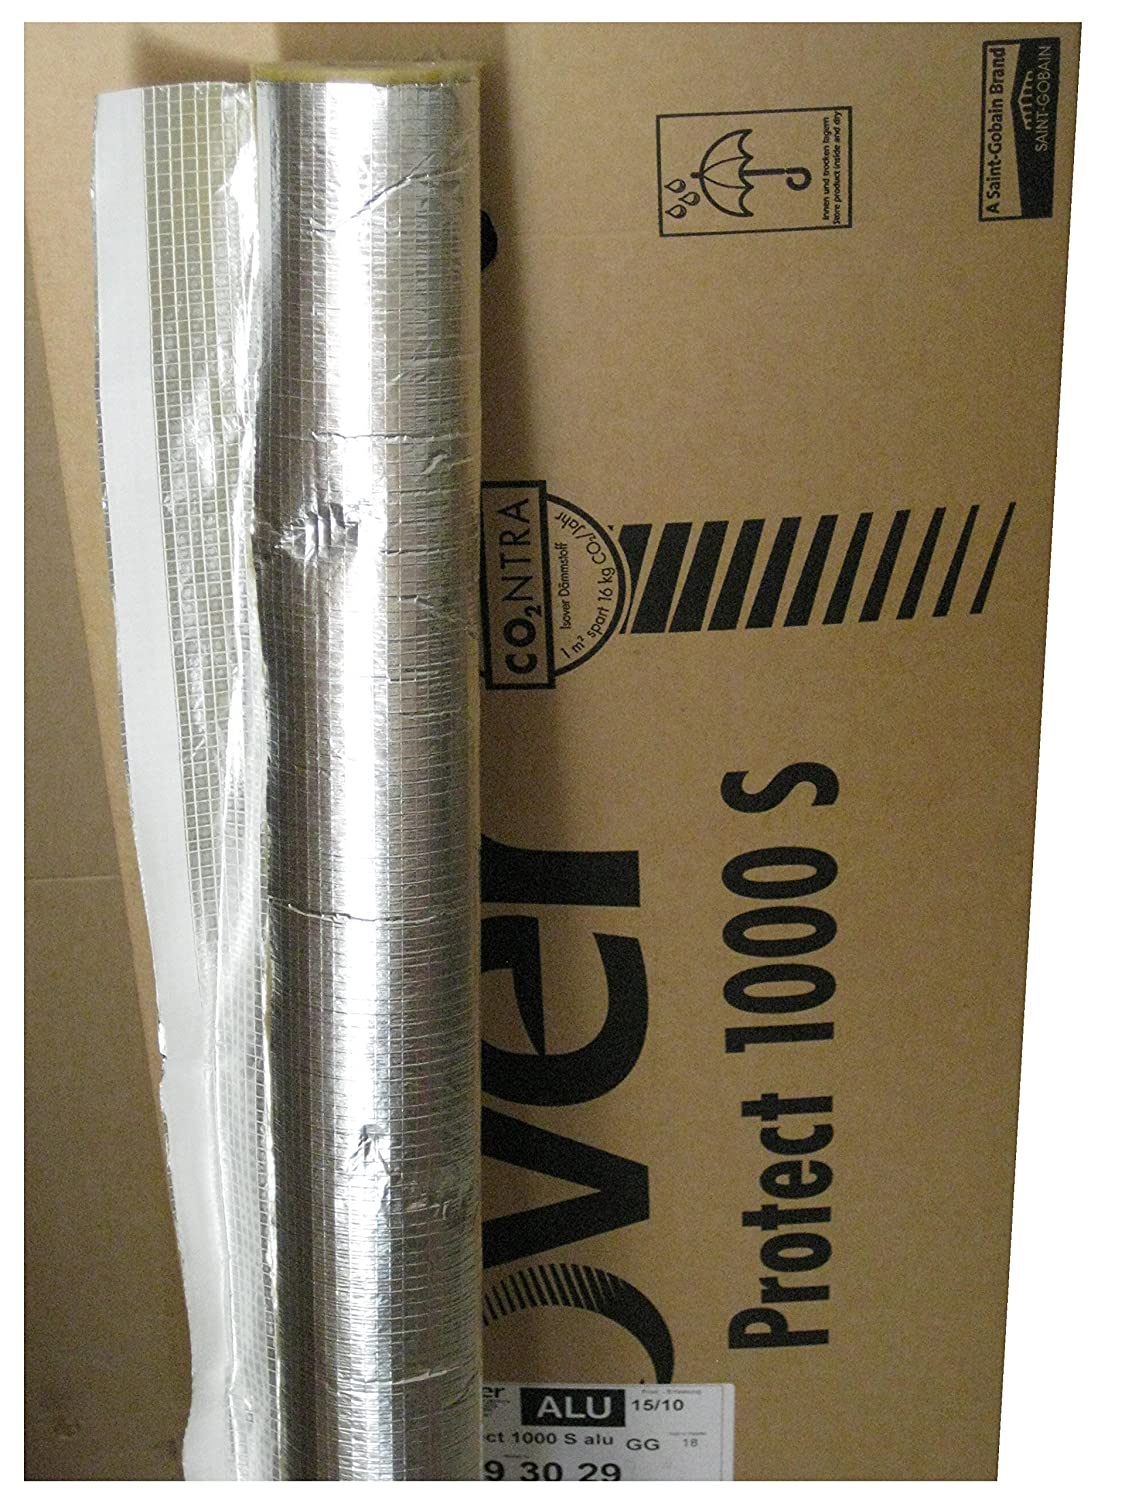 Isover Protect 1000 S alu Steinwolle Rohrisolierung 42 x 30 mm